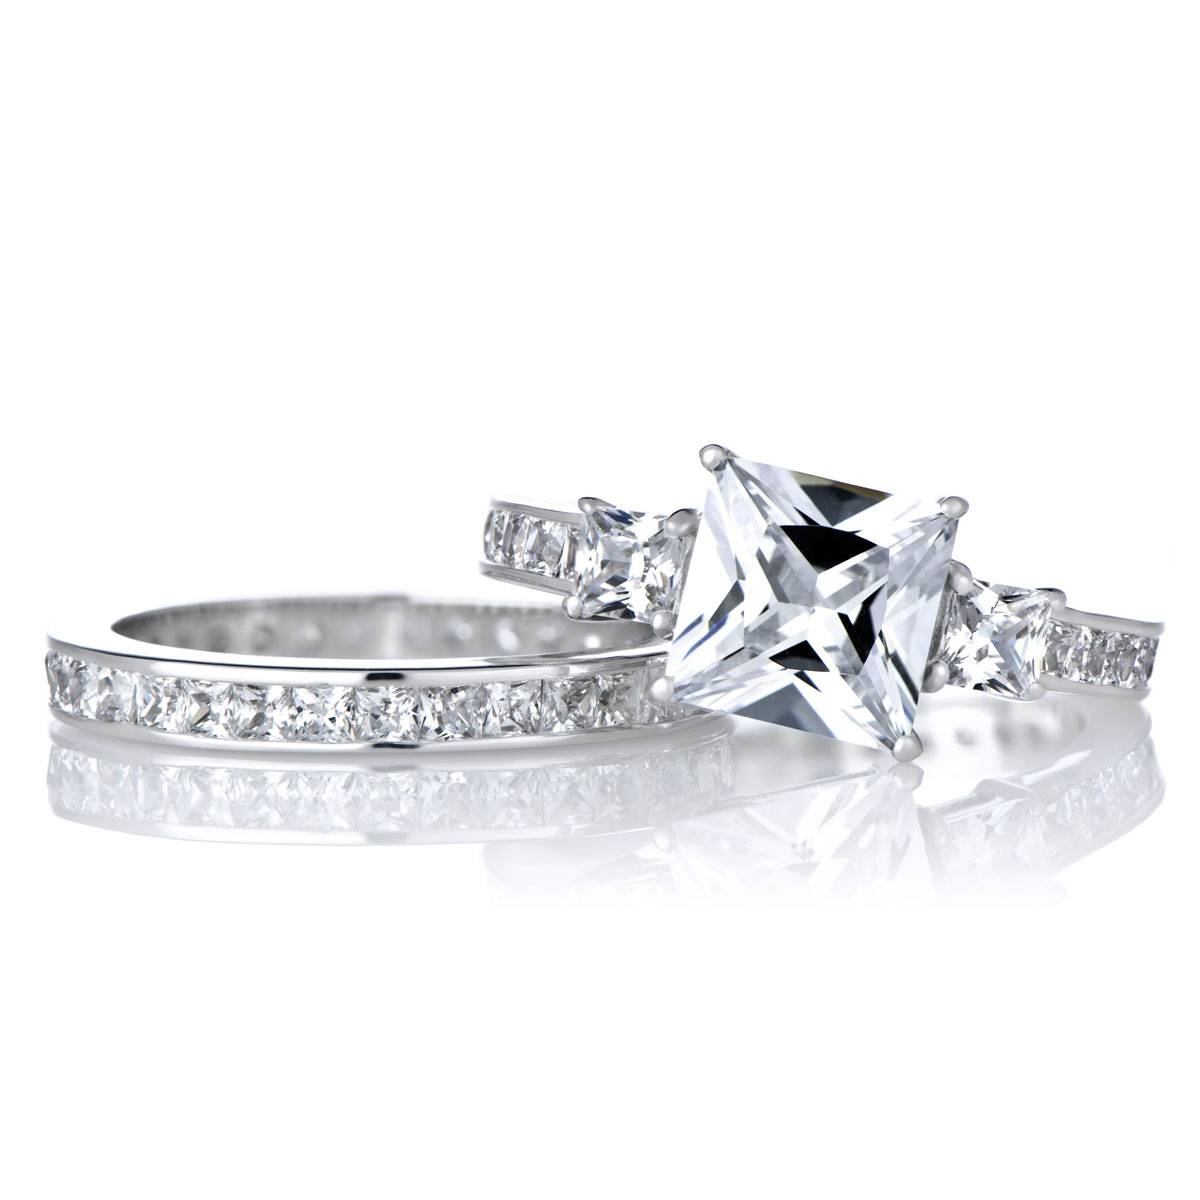 Engagement Rings : Wedding Rings Without Diamonds Awesome In Engagement Rings And Wedding Rings Sets (View 10 of 15)